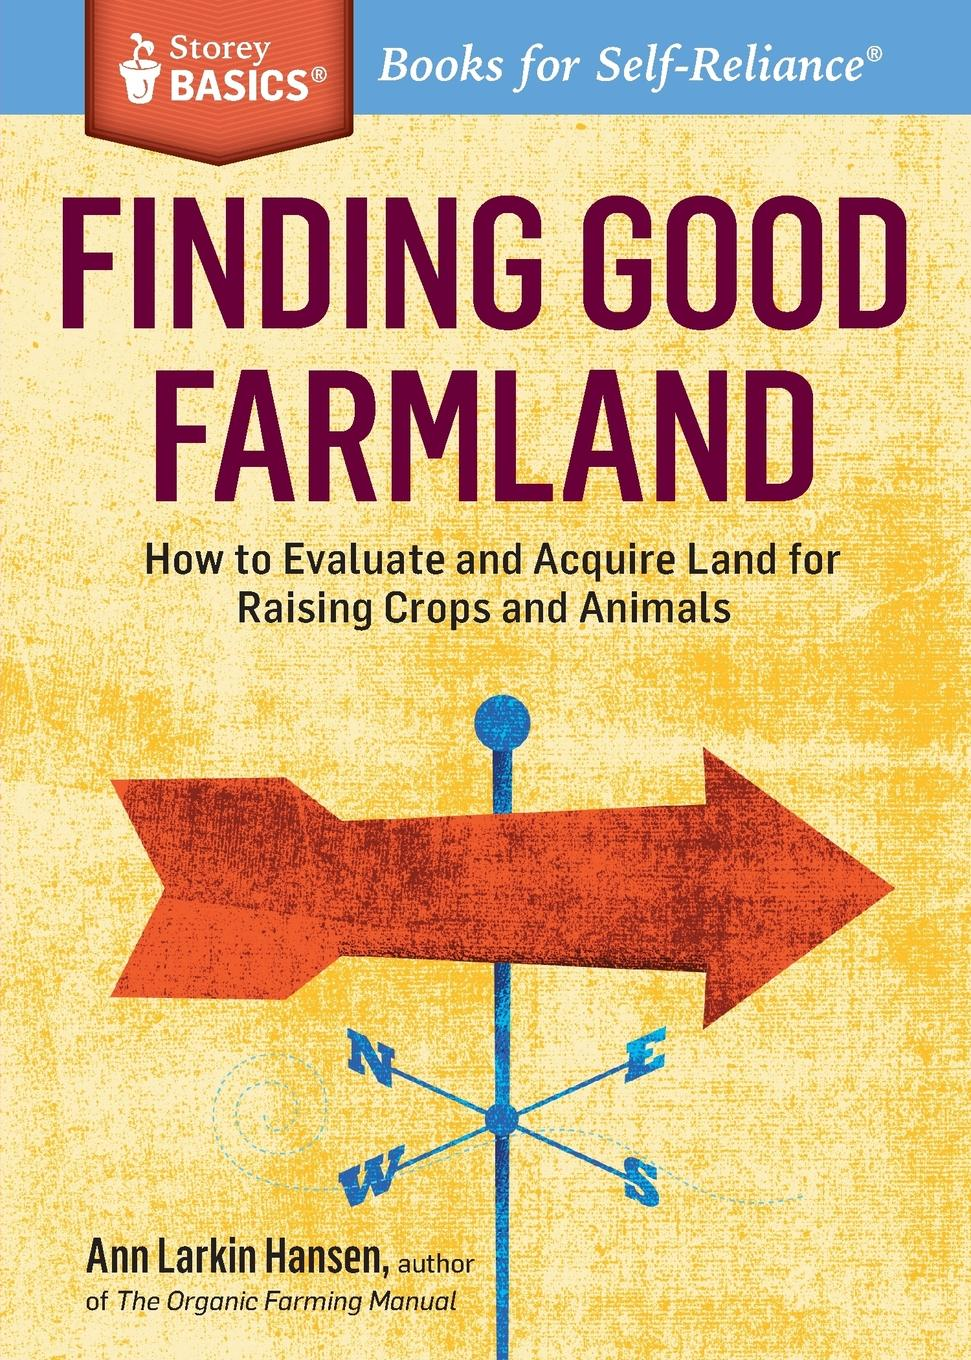 Ann Larkin Hansen Finding Good Farmland. How to Evaluate and Acquire Land for Raising Crops and Animals. A Storey BASICS. Title donald wilson a easements relating to land surveying and title examination